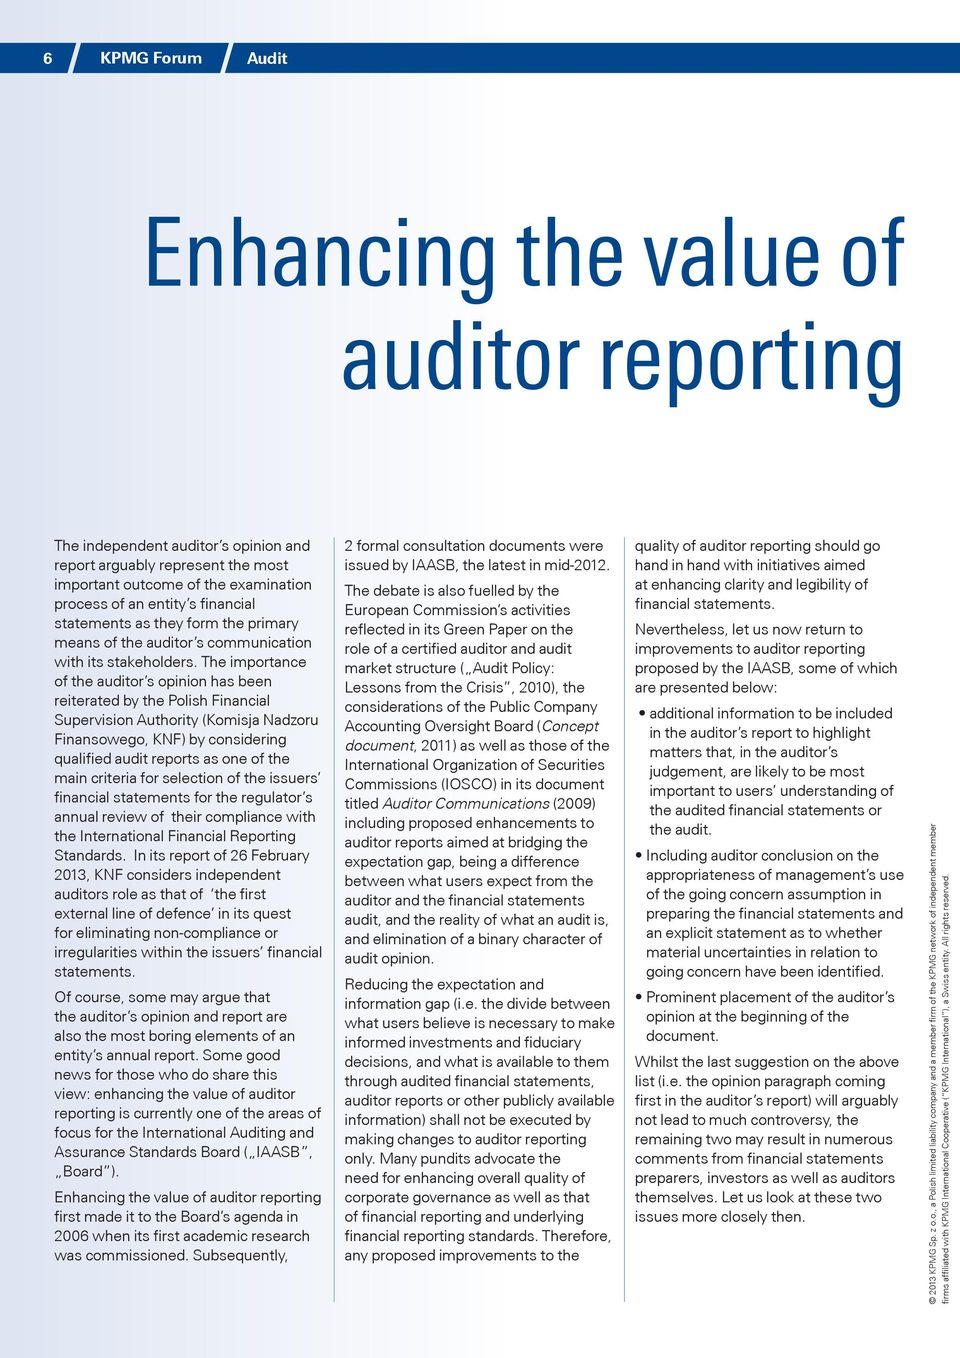 The importance of the auditor s opinion has been reiterated by the Polish Financial Supervision Authority (Komisja Nadzoru Finansowego, KNF) by considering qualified audit reports as one of the main